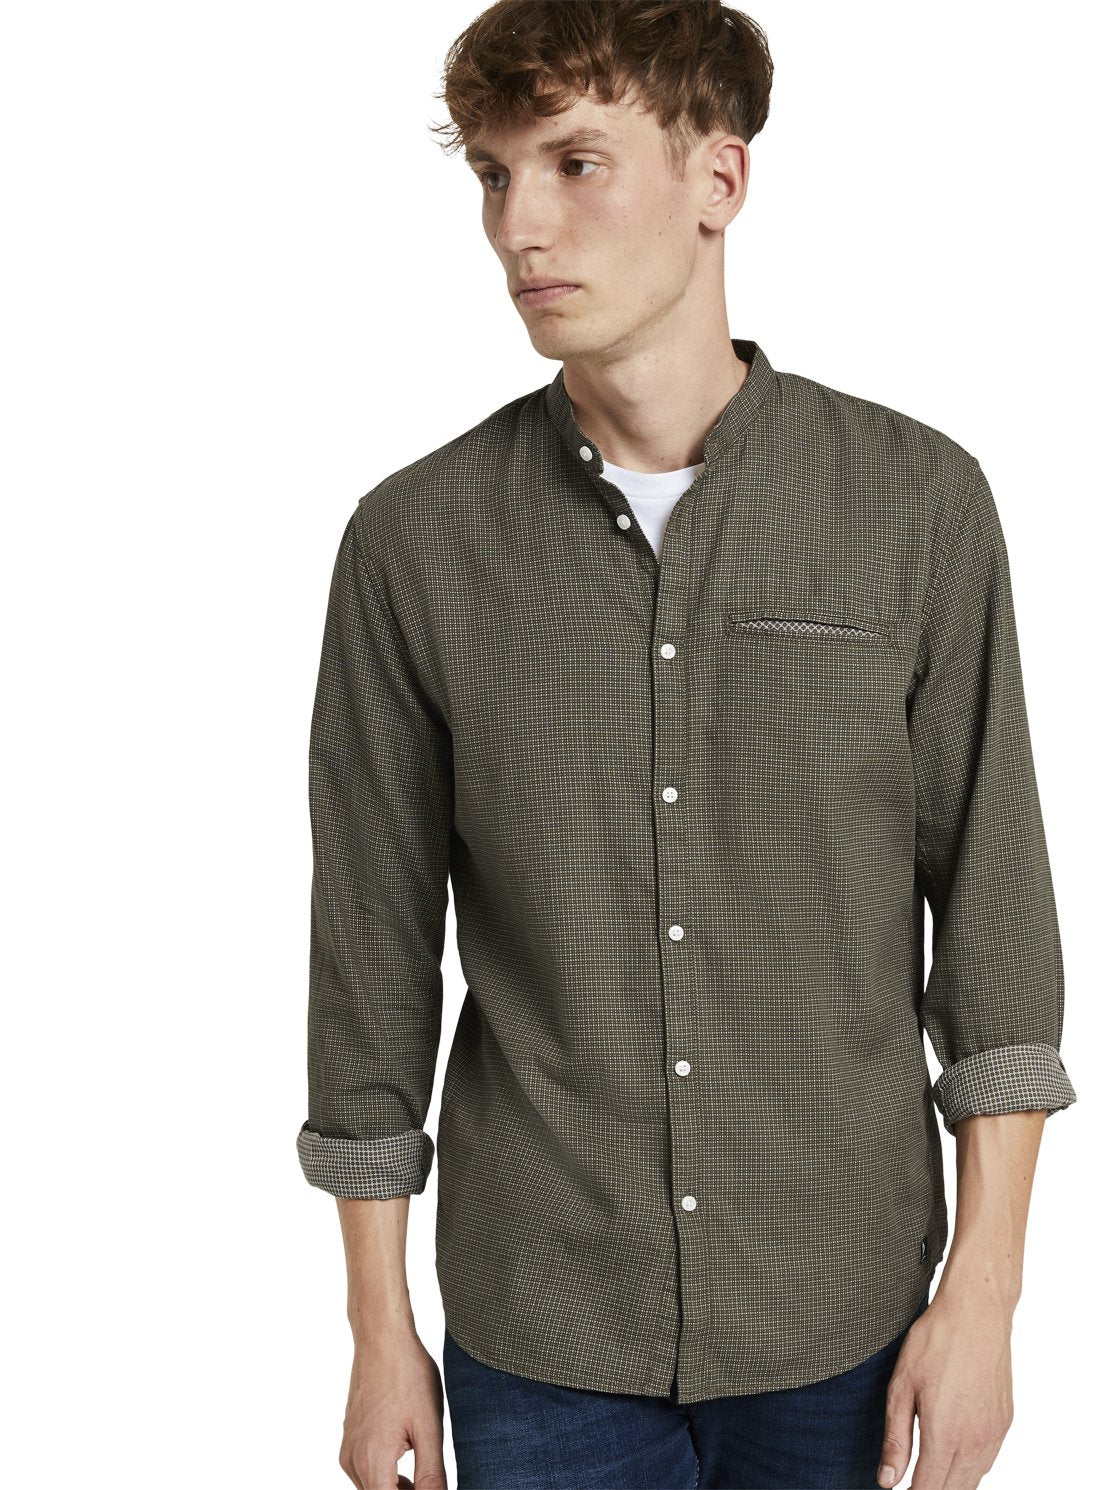 Tom Tailor 1020173 men's shirt khaki